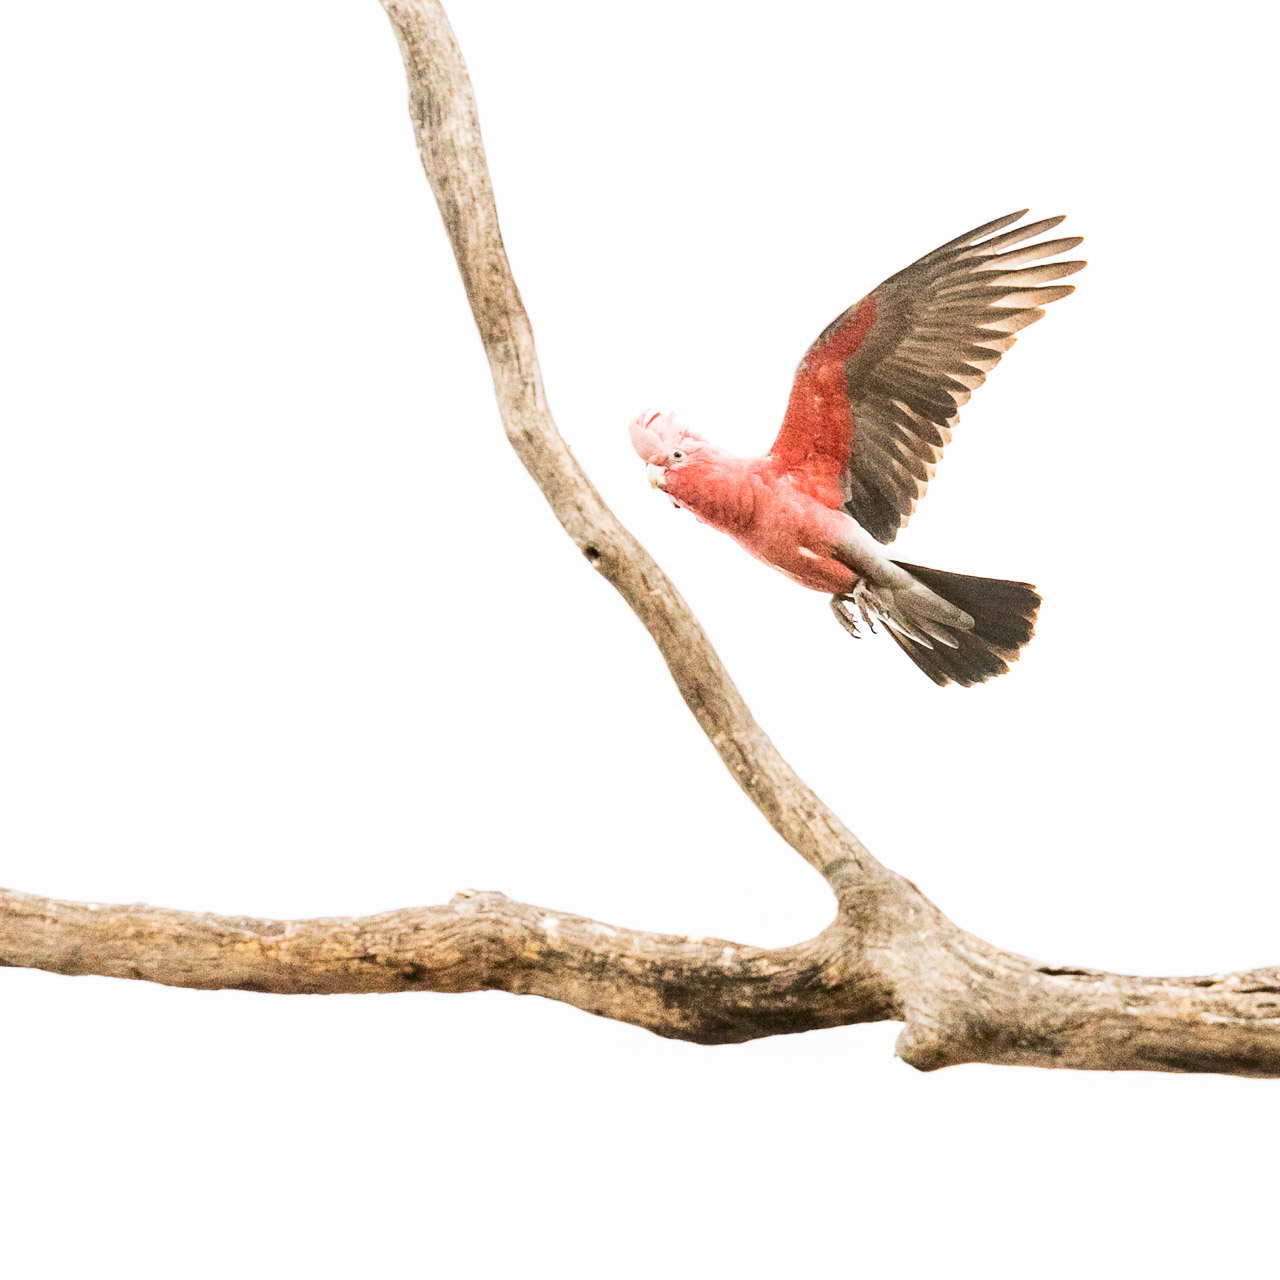 Profile of galah in flight